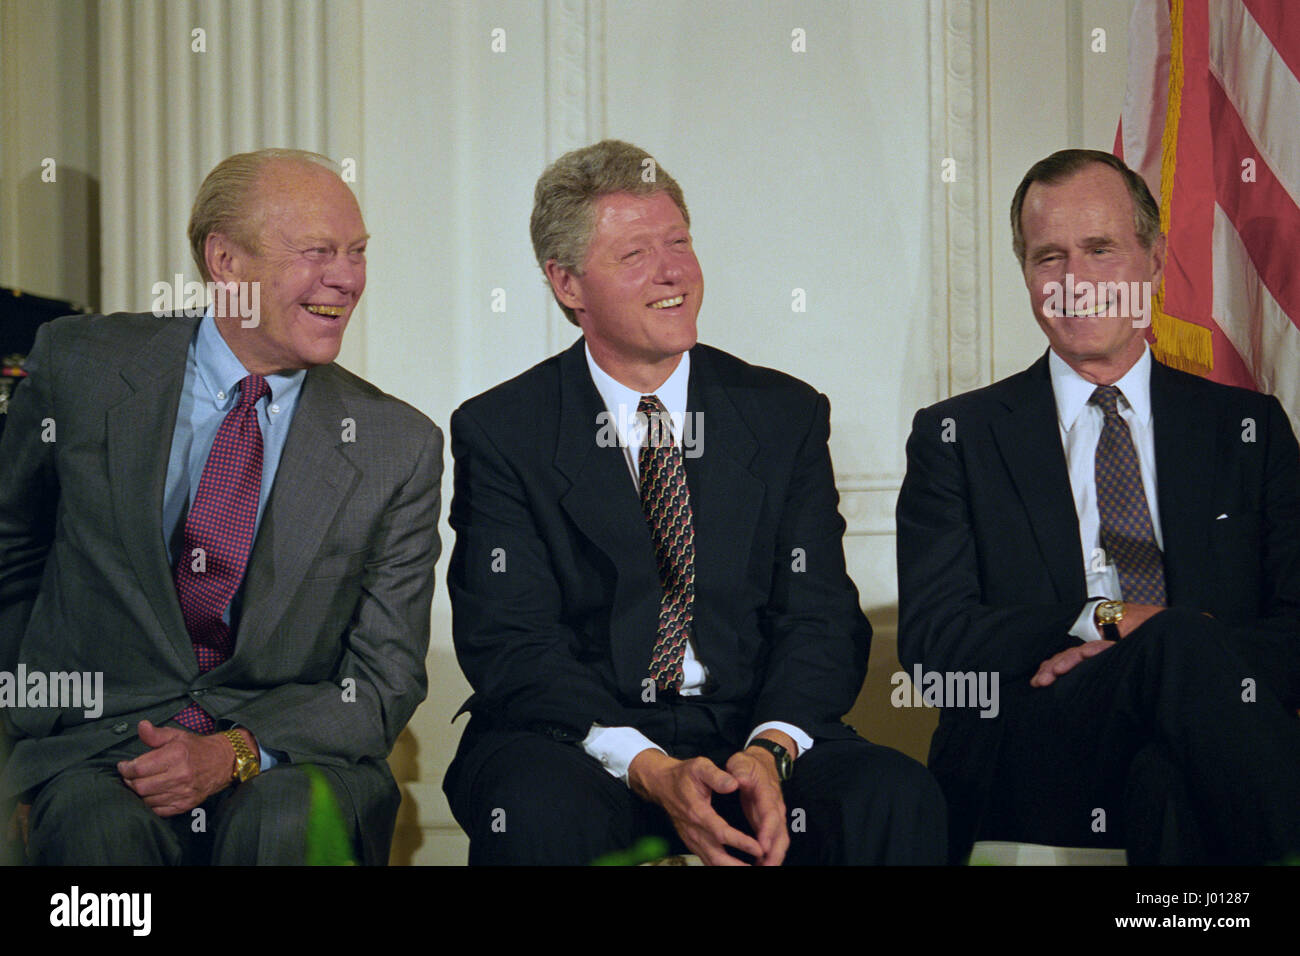 a biography of william j clinton an american president Ver vídeo life portrait of bill clinton  dc and talked about his biography of president clinton,  masako christian teacher clinton (william j).